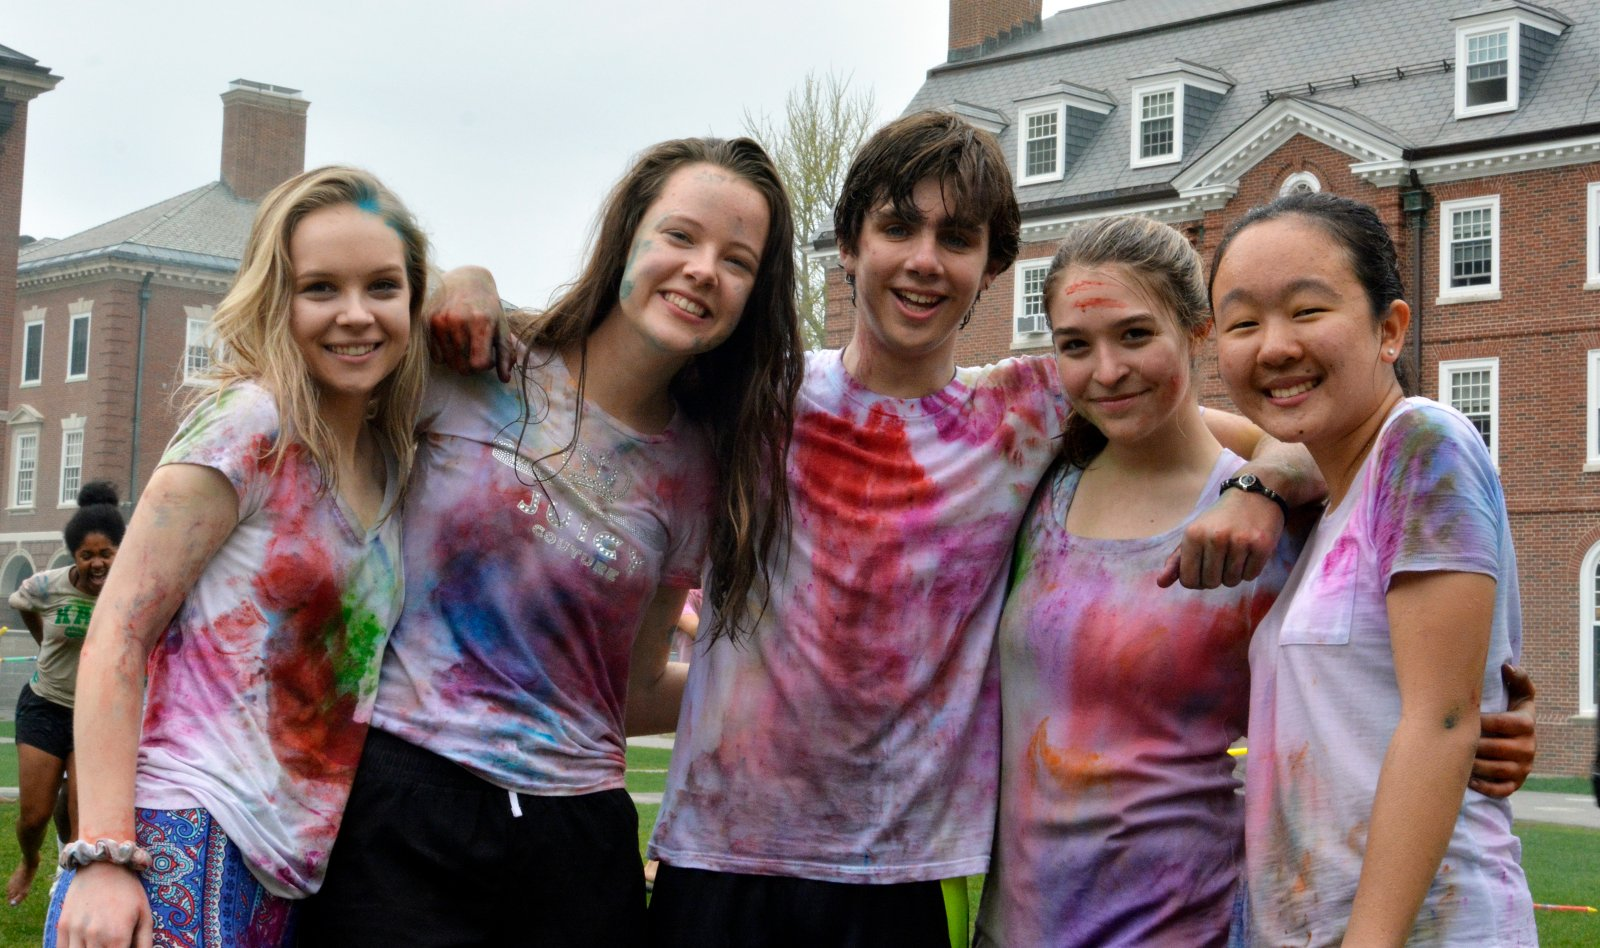 Students gather on Wetherell quad to celebrate the Hindu festival of Holi.